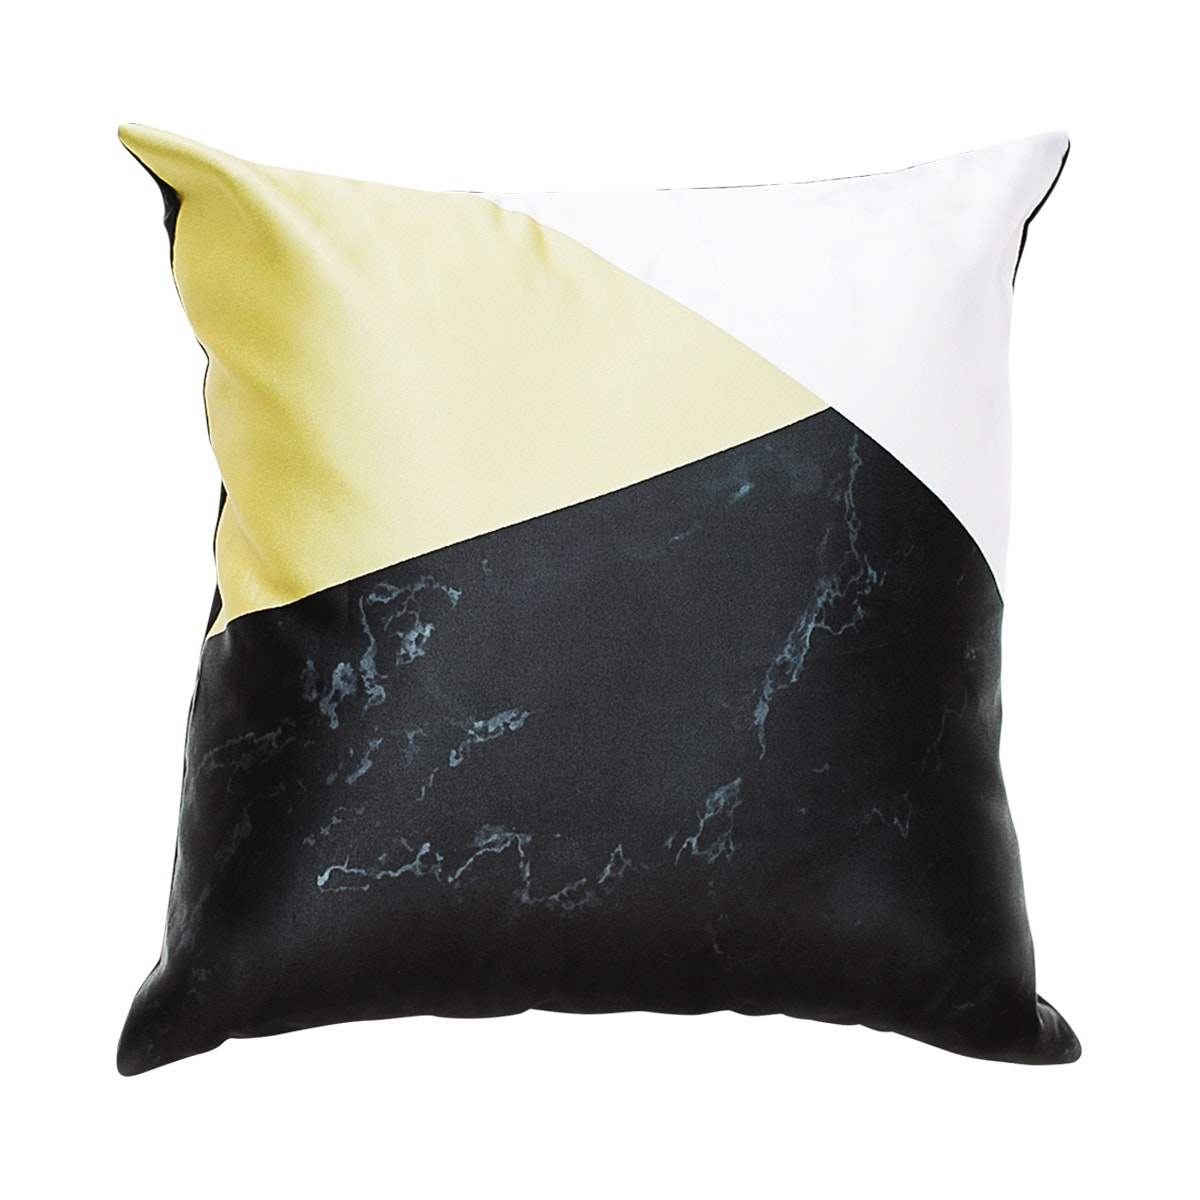 Glerry Home Decor Bw Copper Cushion 40x40cm